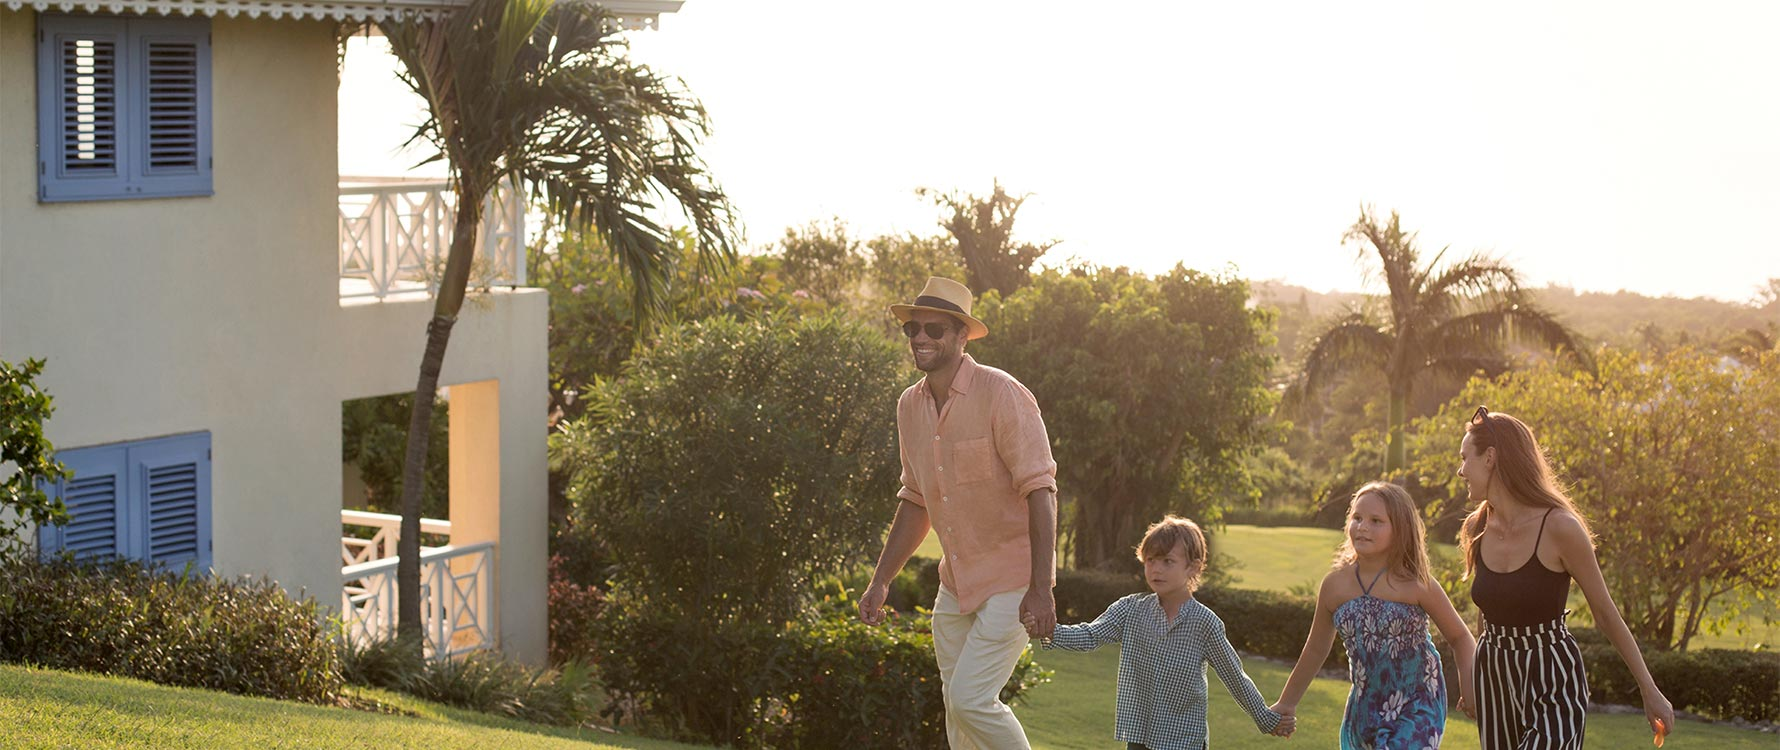 A family of four walks up a slope with a villa and lush greenery in the background.